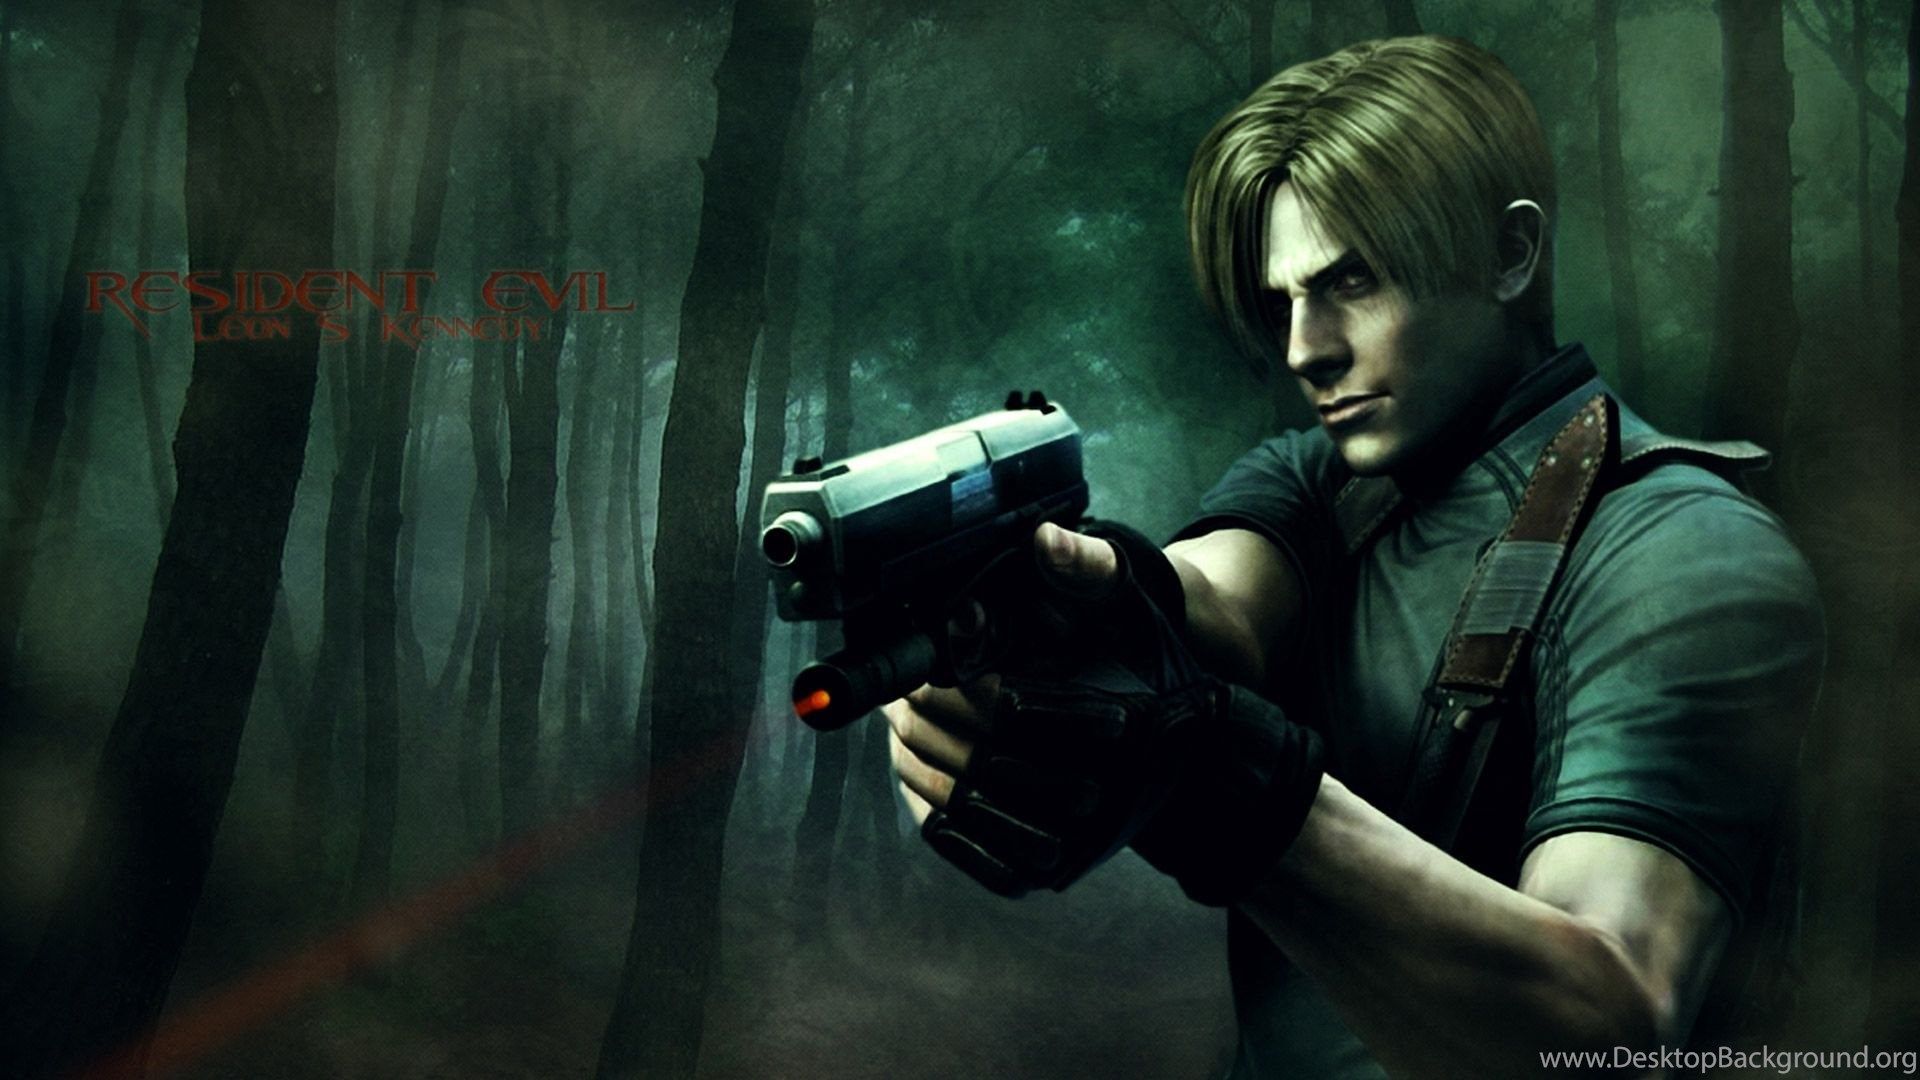 Leon Resident Evil 4K Wallpapers - Top Free Leon Resident